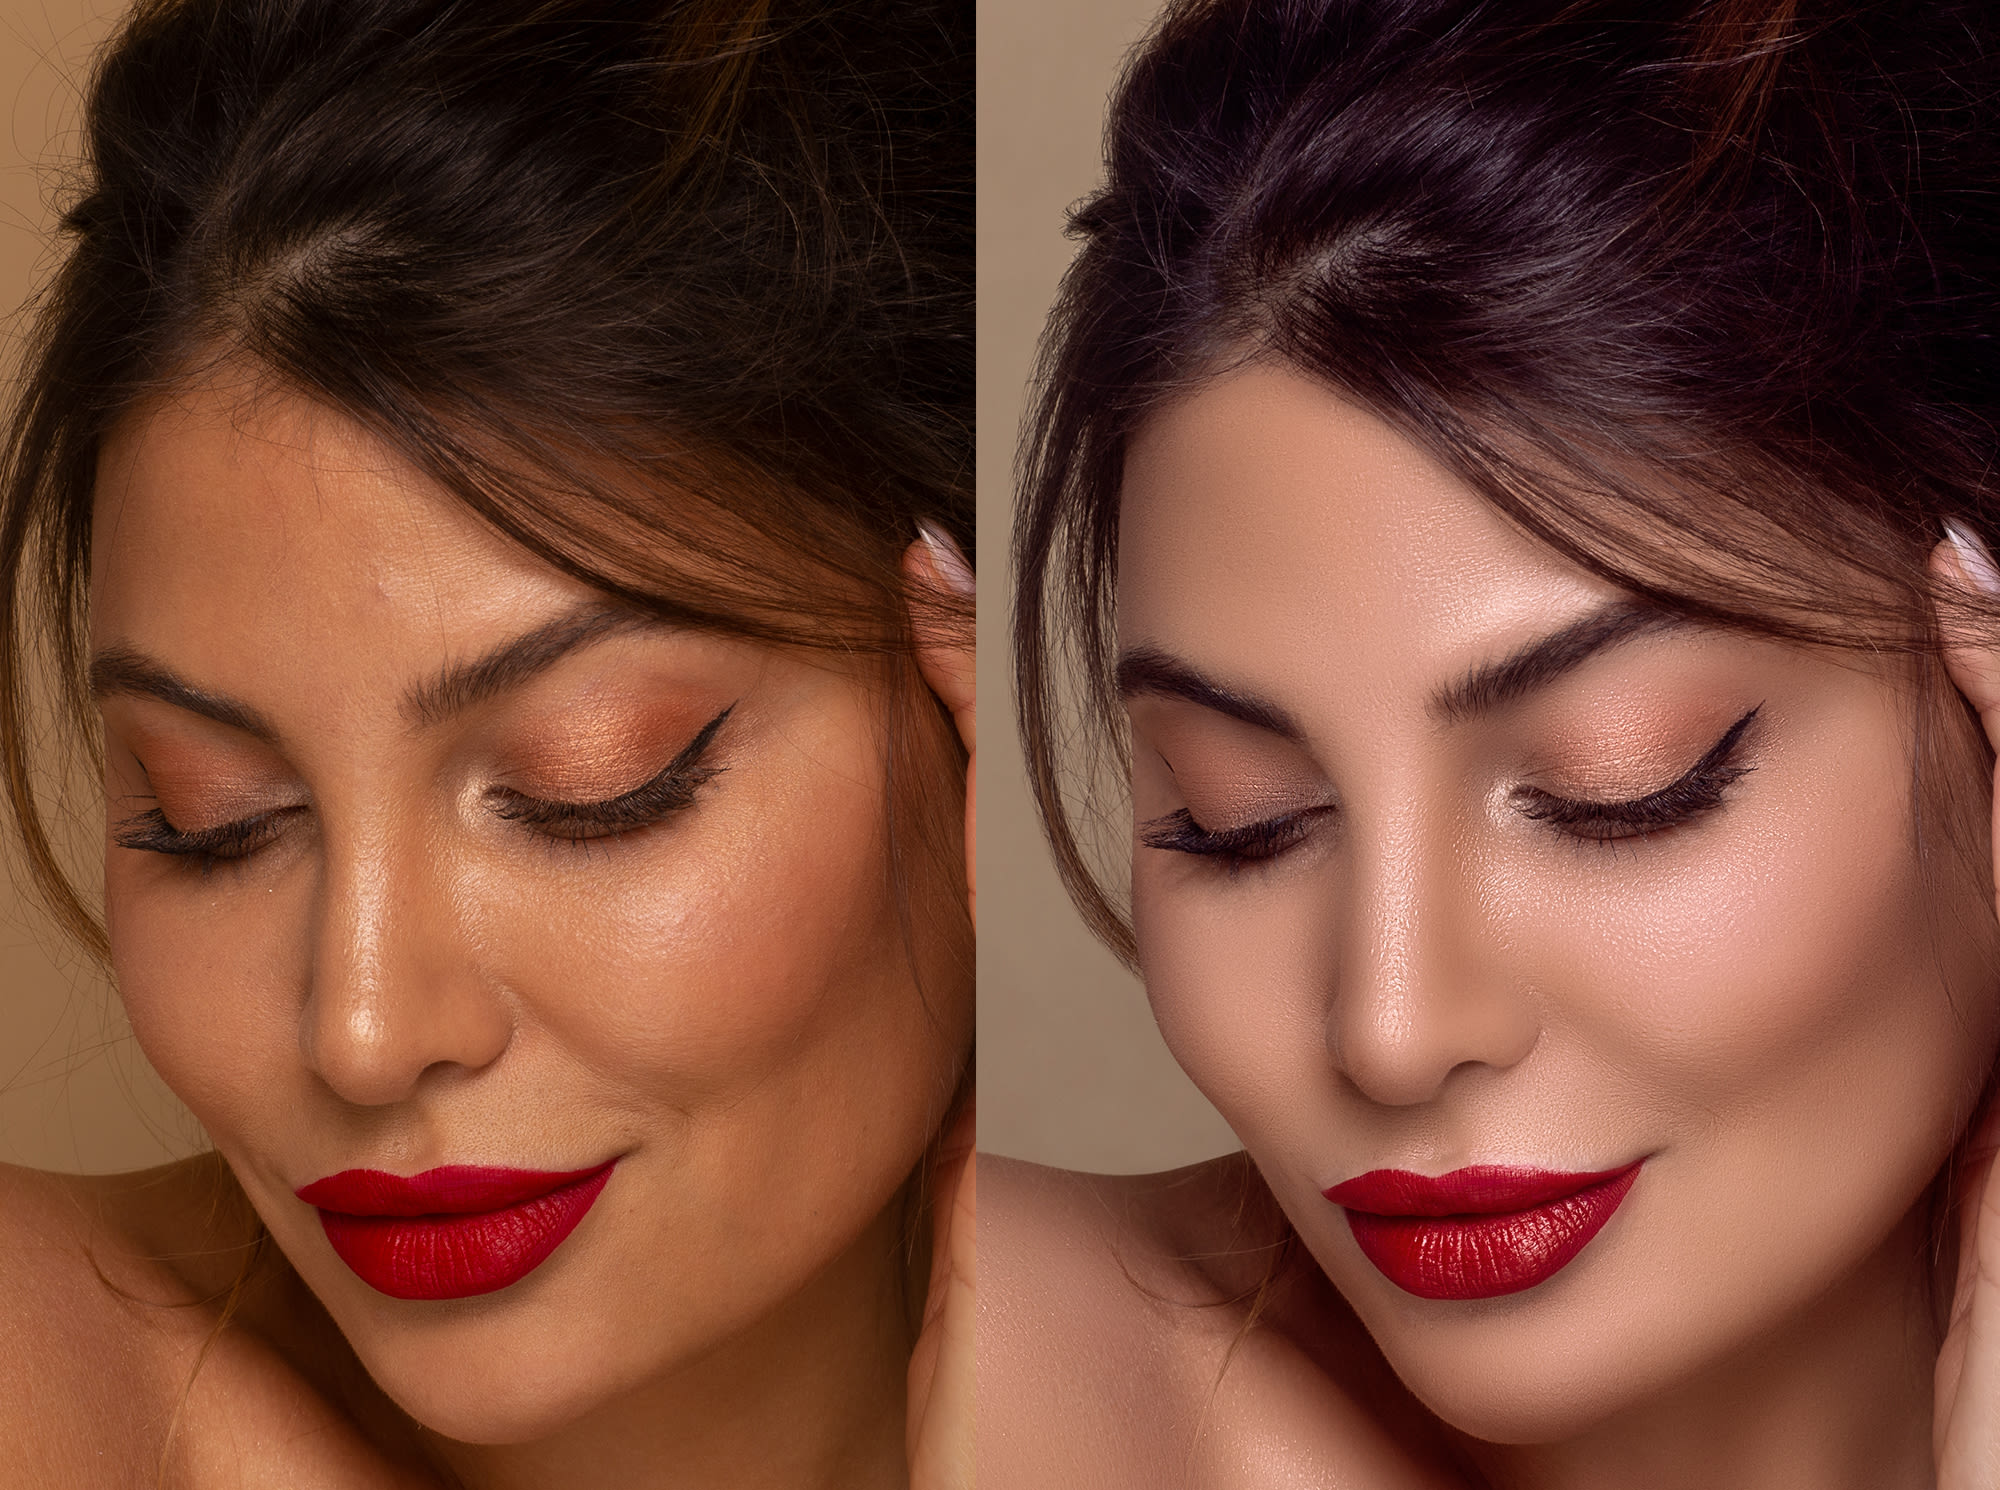 I will do professional picture retouch and edit